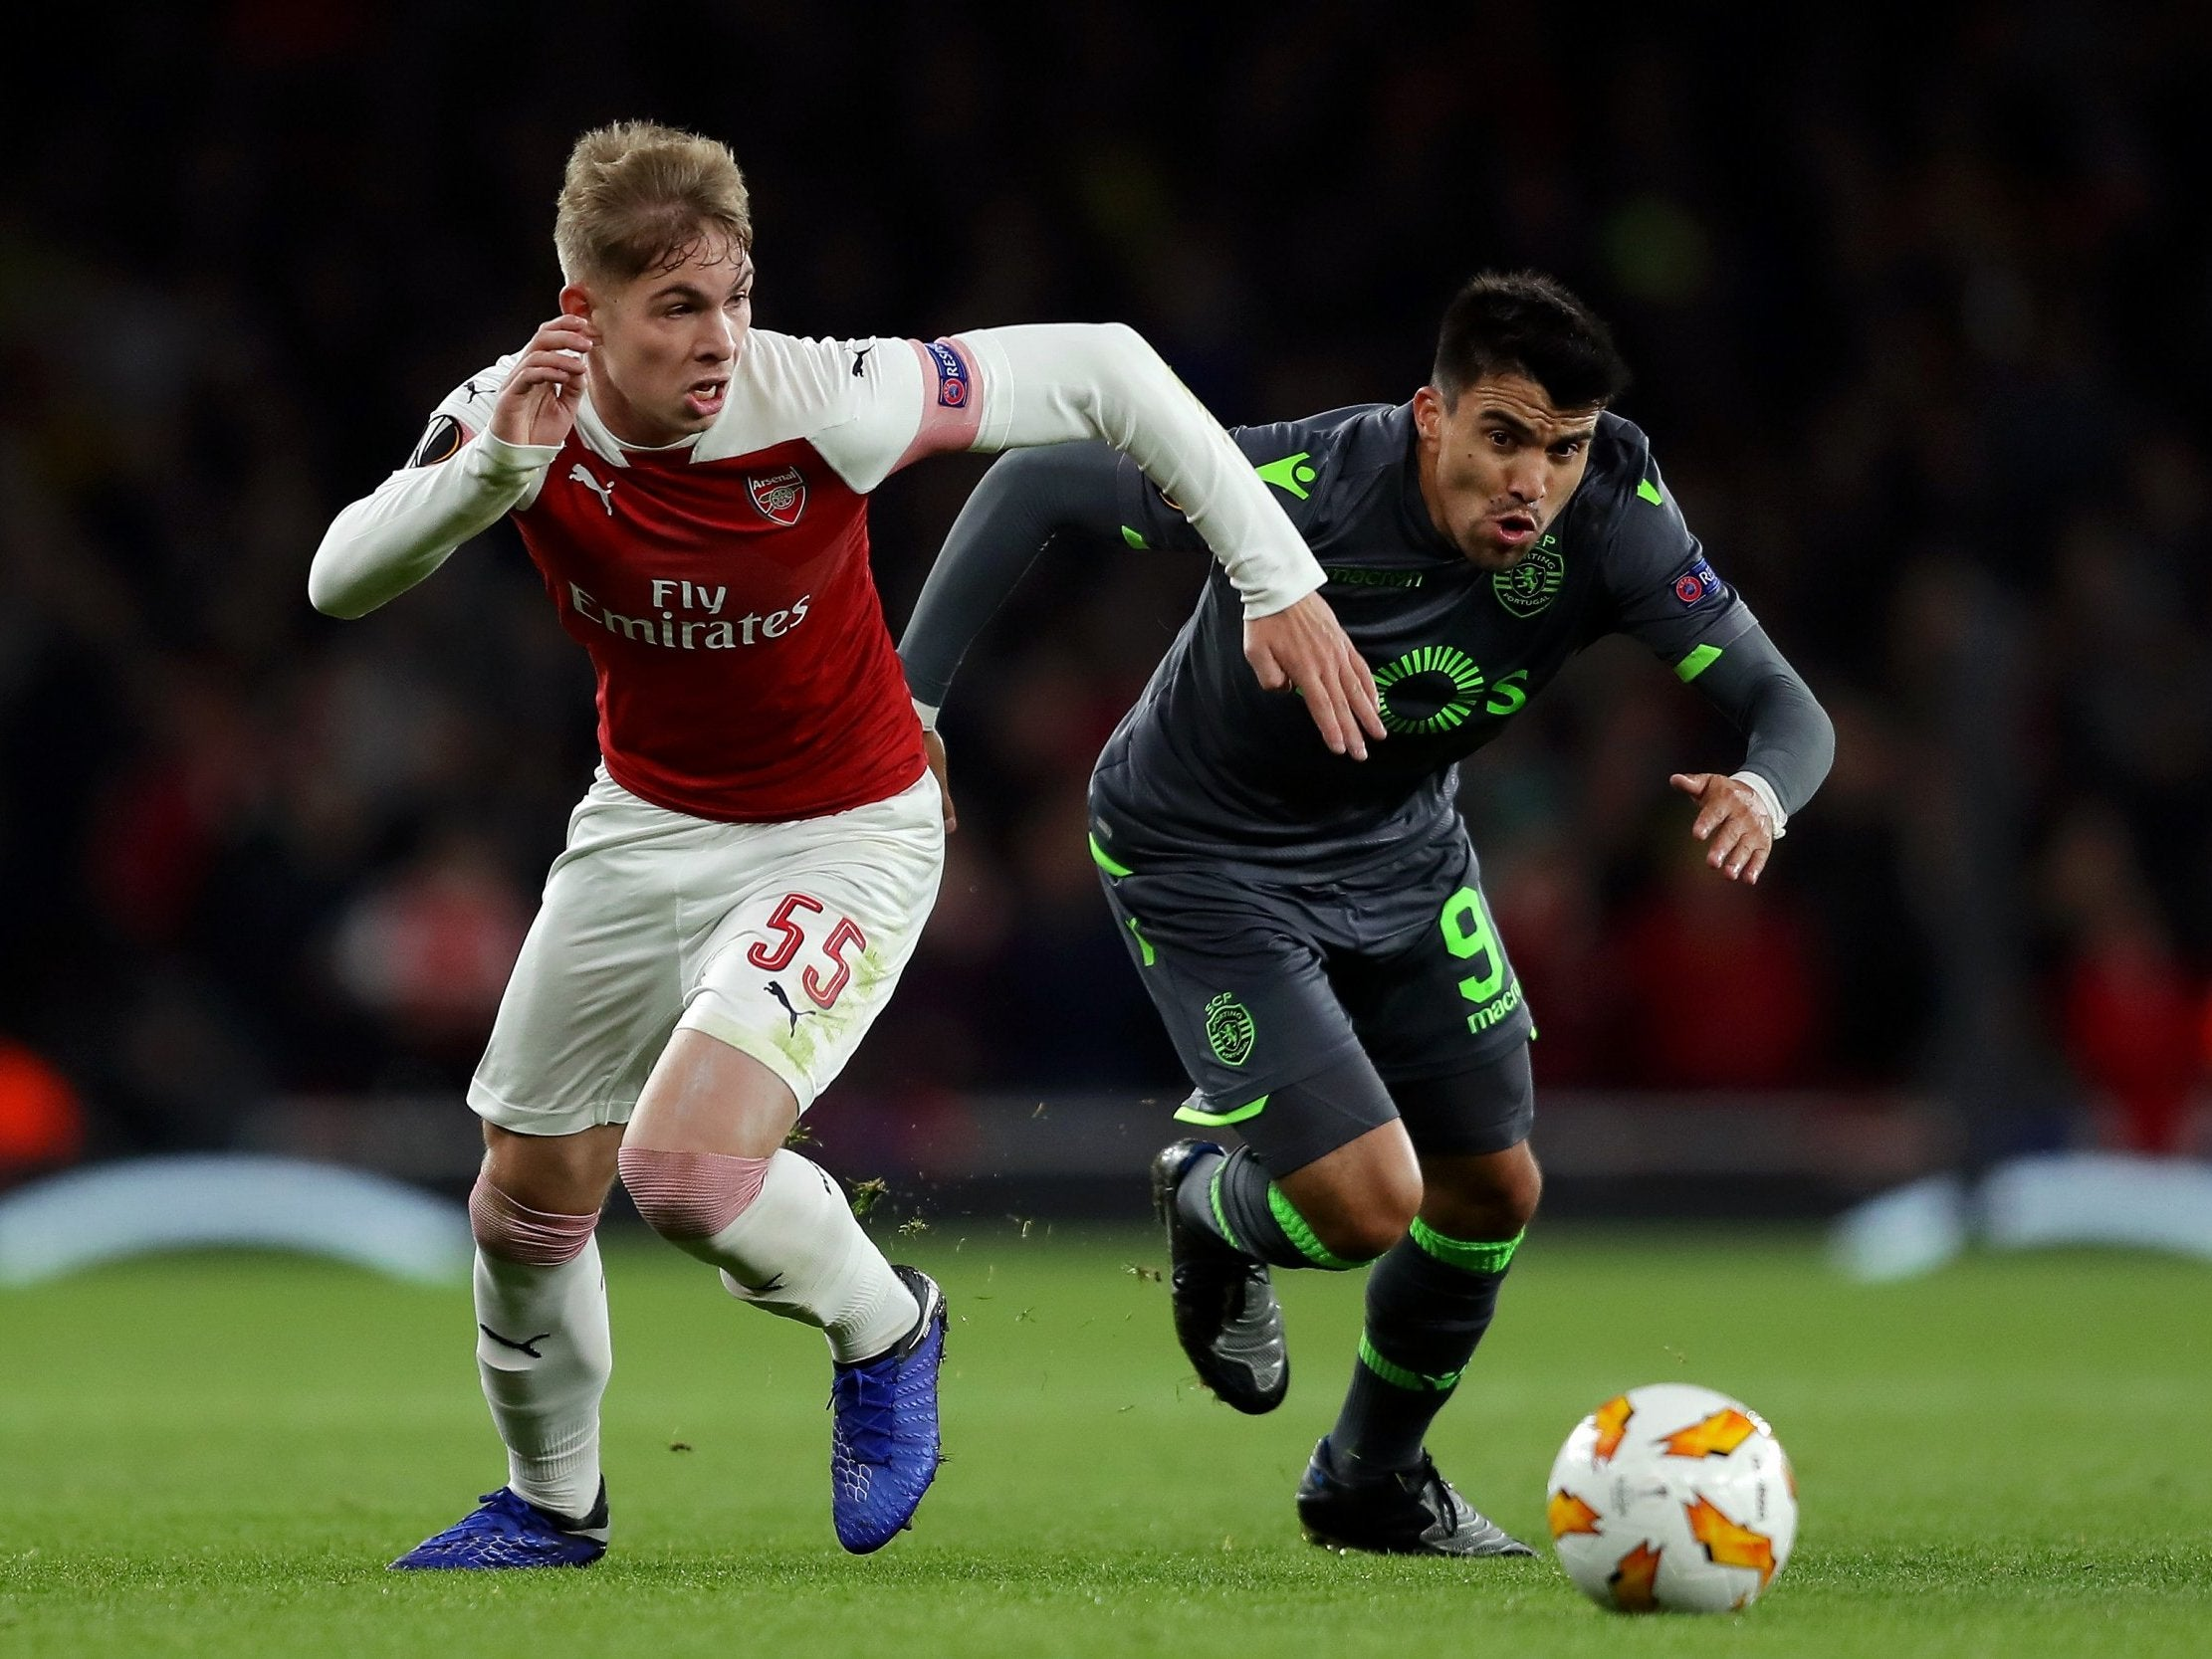 Emile Smith Rowe draws similarities to Aaron Ramsey and will do well to learn from his mistakes at Arsenal